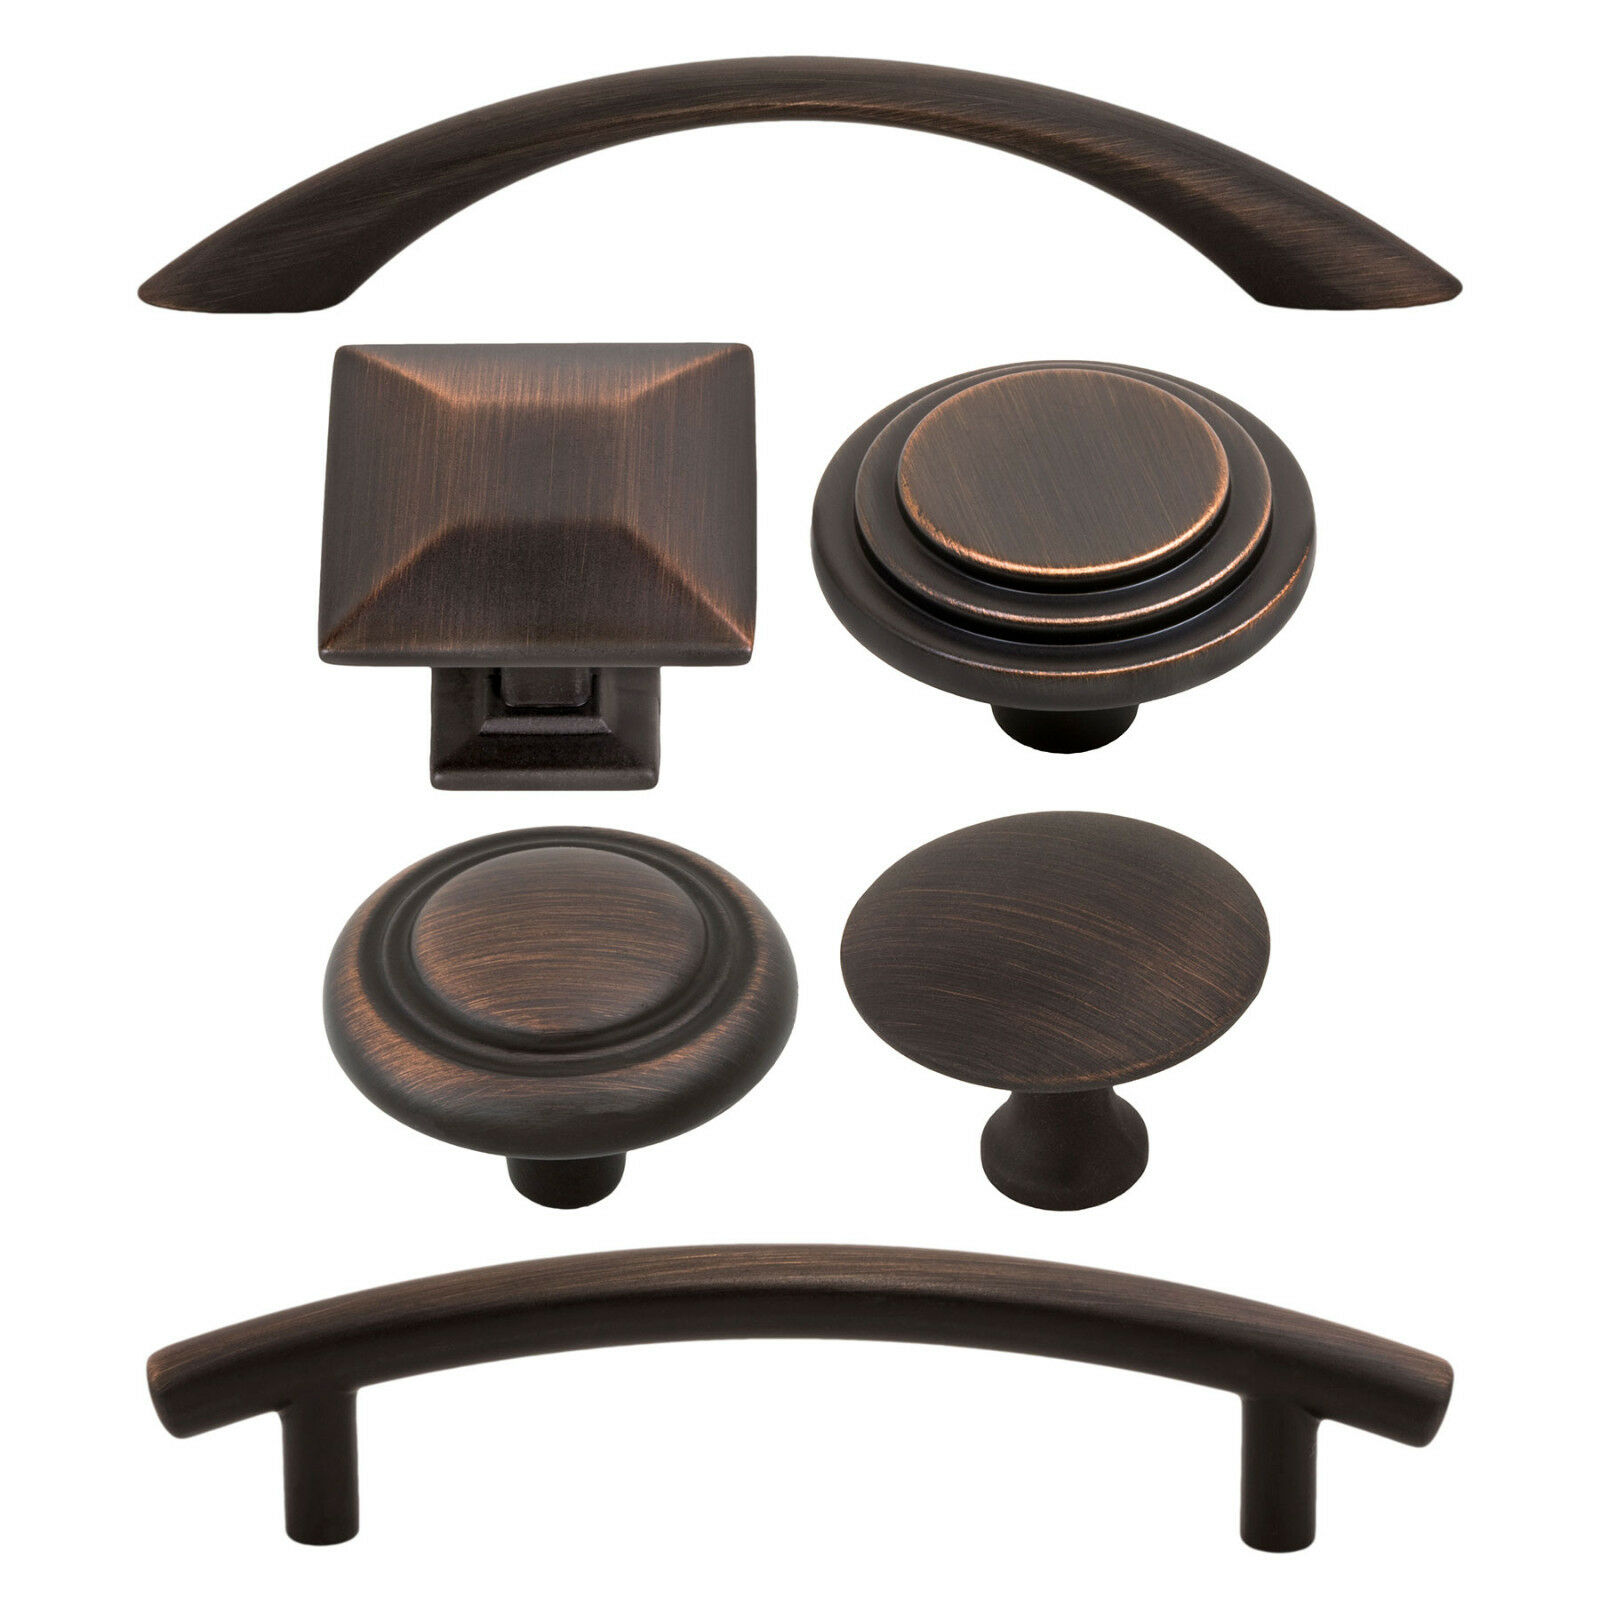 Clic And Modern Kitchen Bath Cabinet Hardware S Pulls Oil Rubbed Bronze 1 Of See More